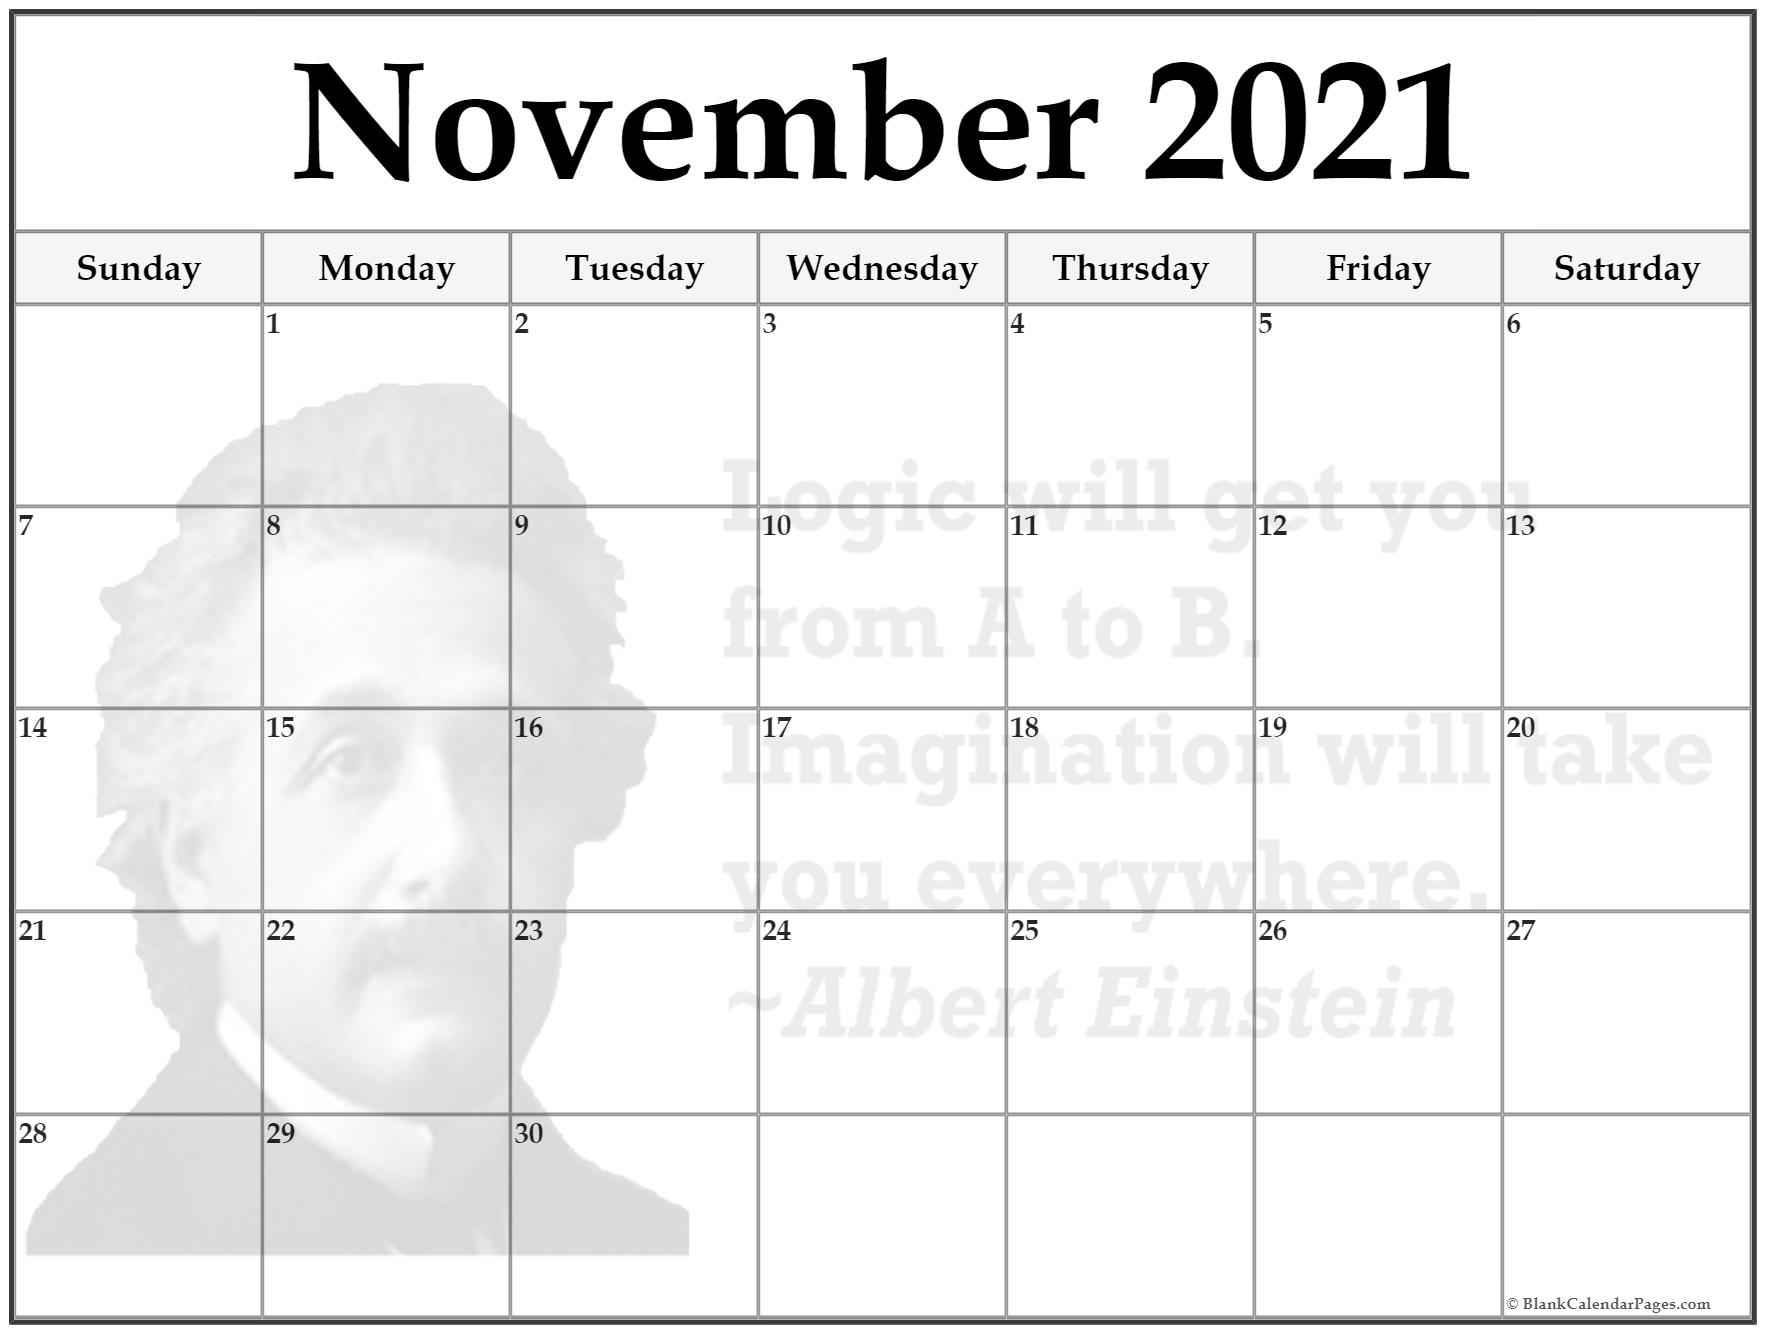 November calendar 2021Logic will get you from A to B. Imagination will take you everywhere ~Albert Einstein